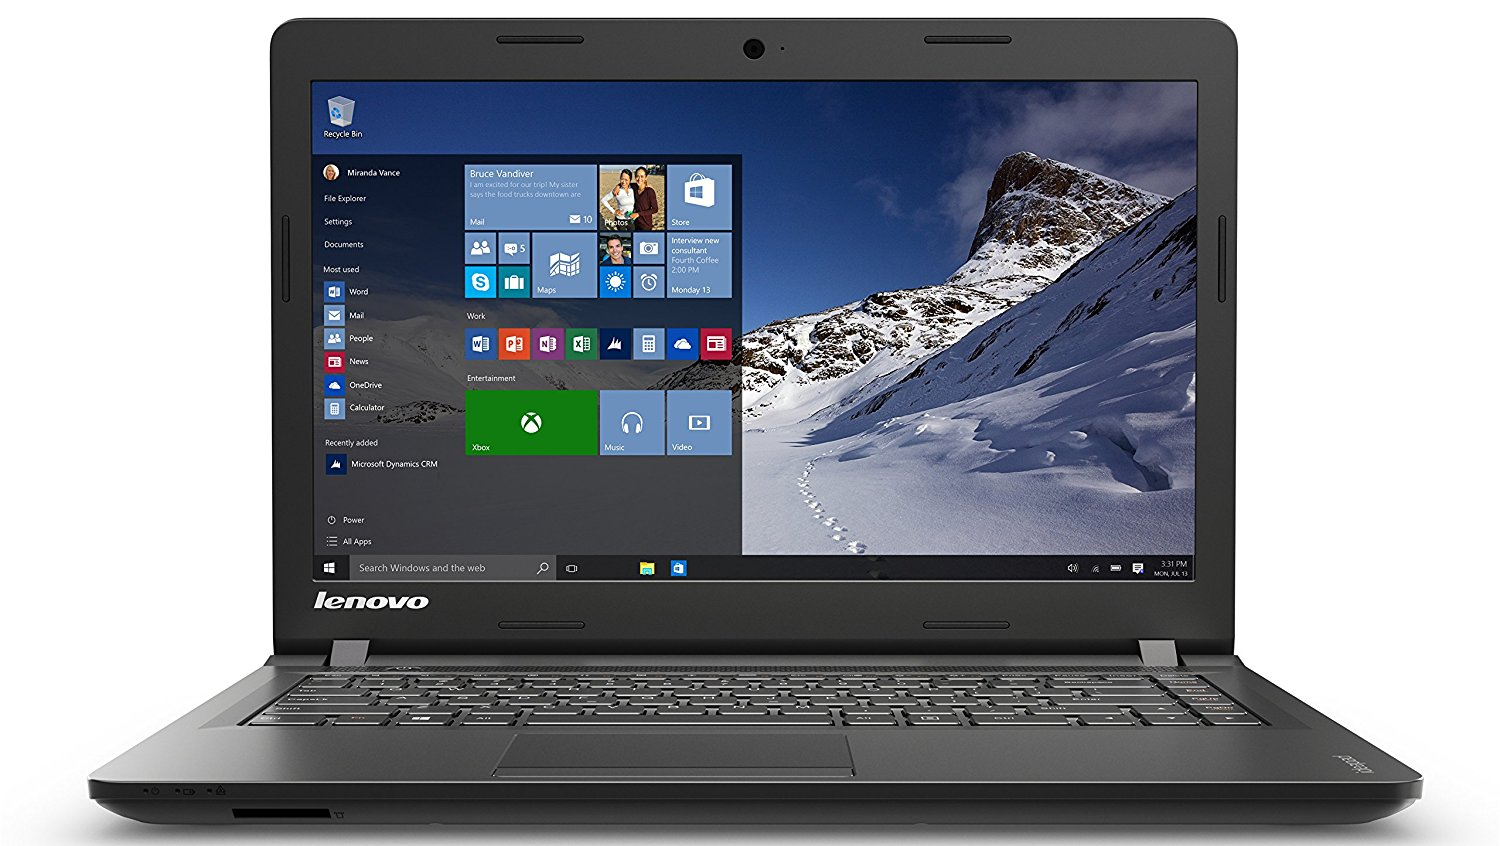 NOTEBOOK LENOVO IDEAPAD 100 15.4 80MH007YUS